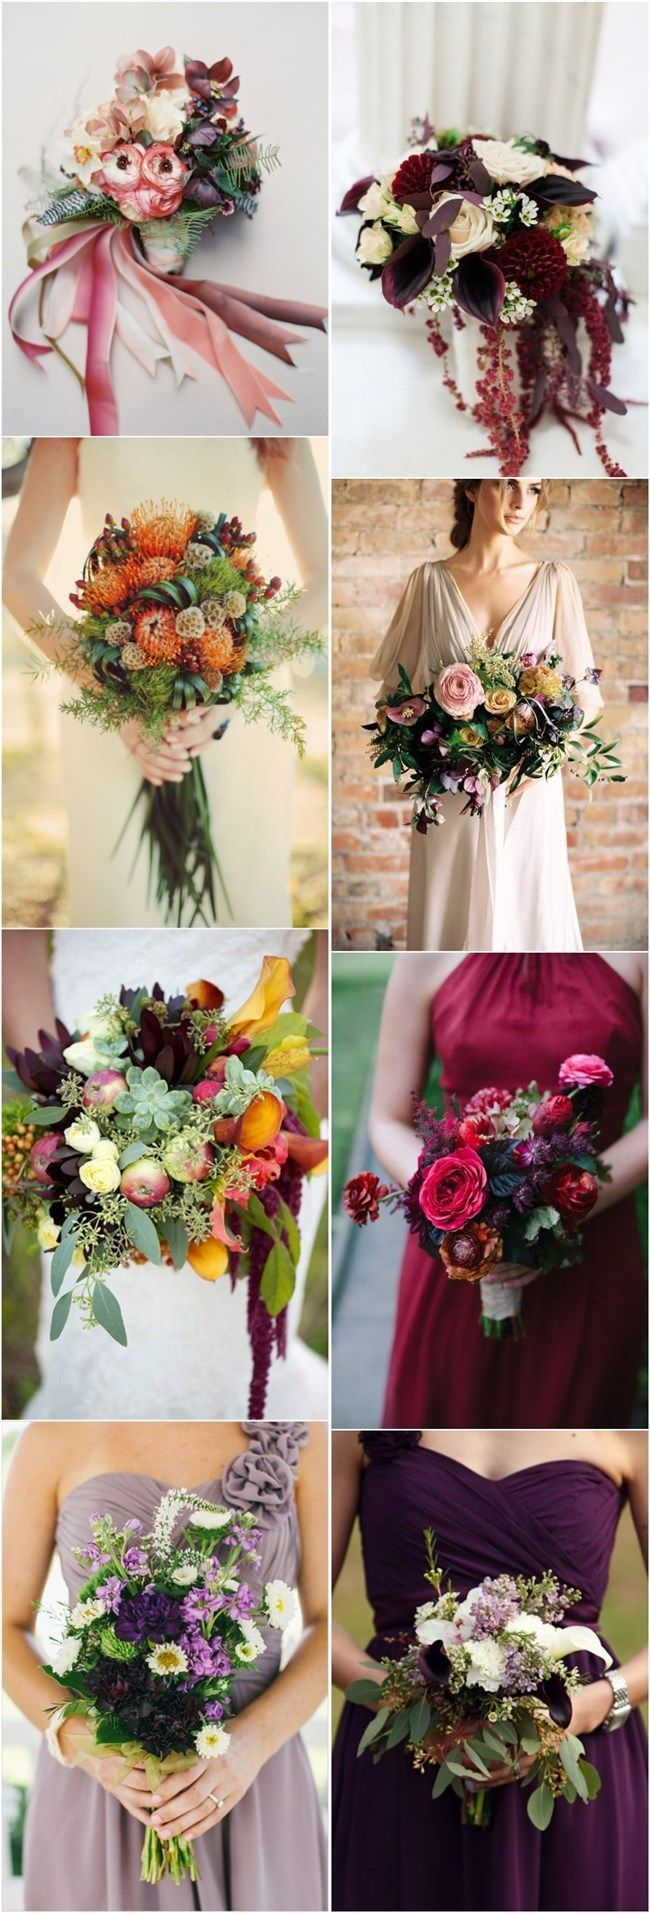 Purple Flowers For October Wedding : The best images about fall and winter wedding